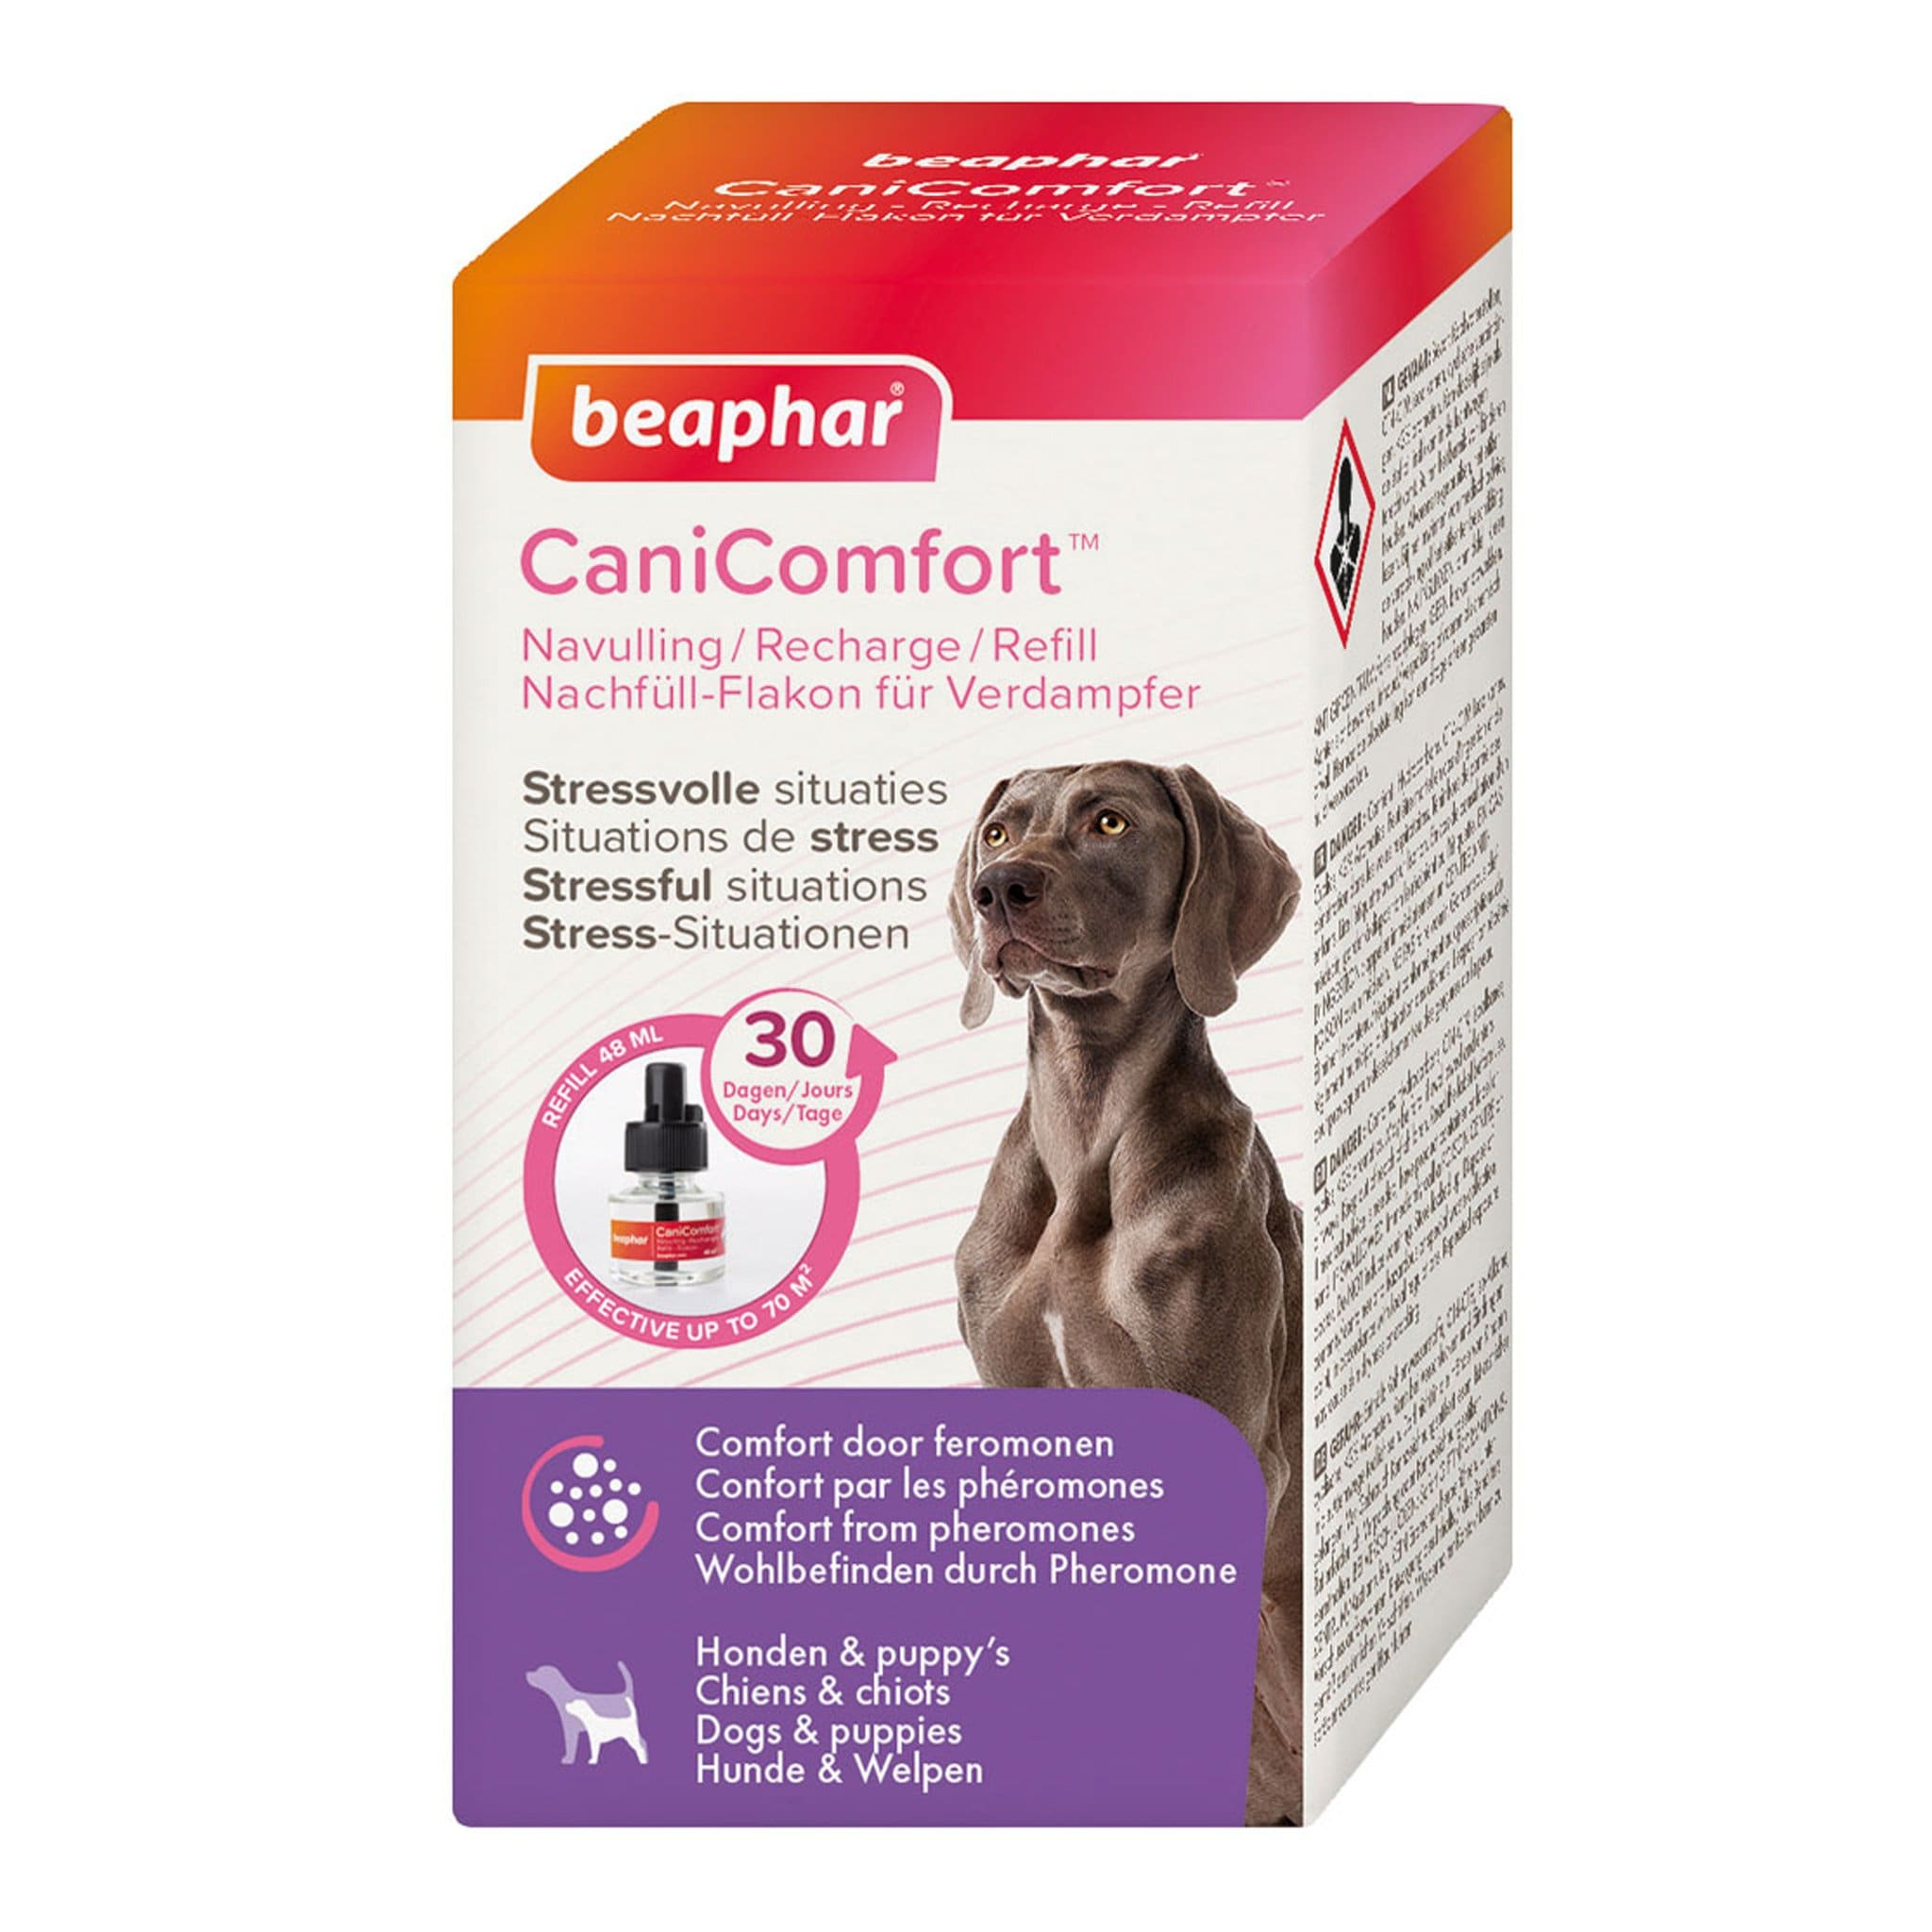 Beaphar CaniComfort Dog Calming Diffuser 30 Day Refill 48ml 27759